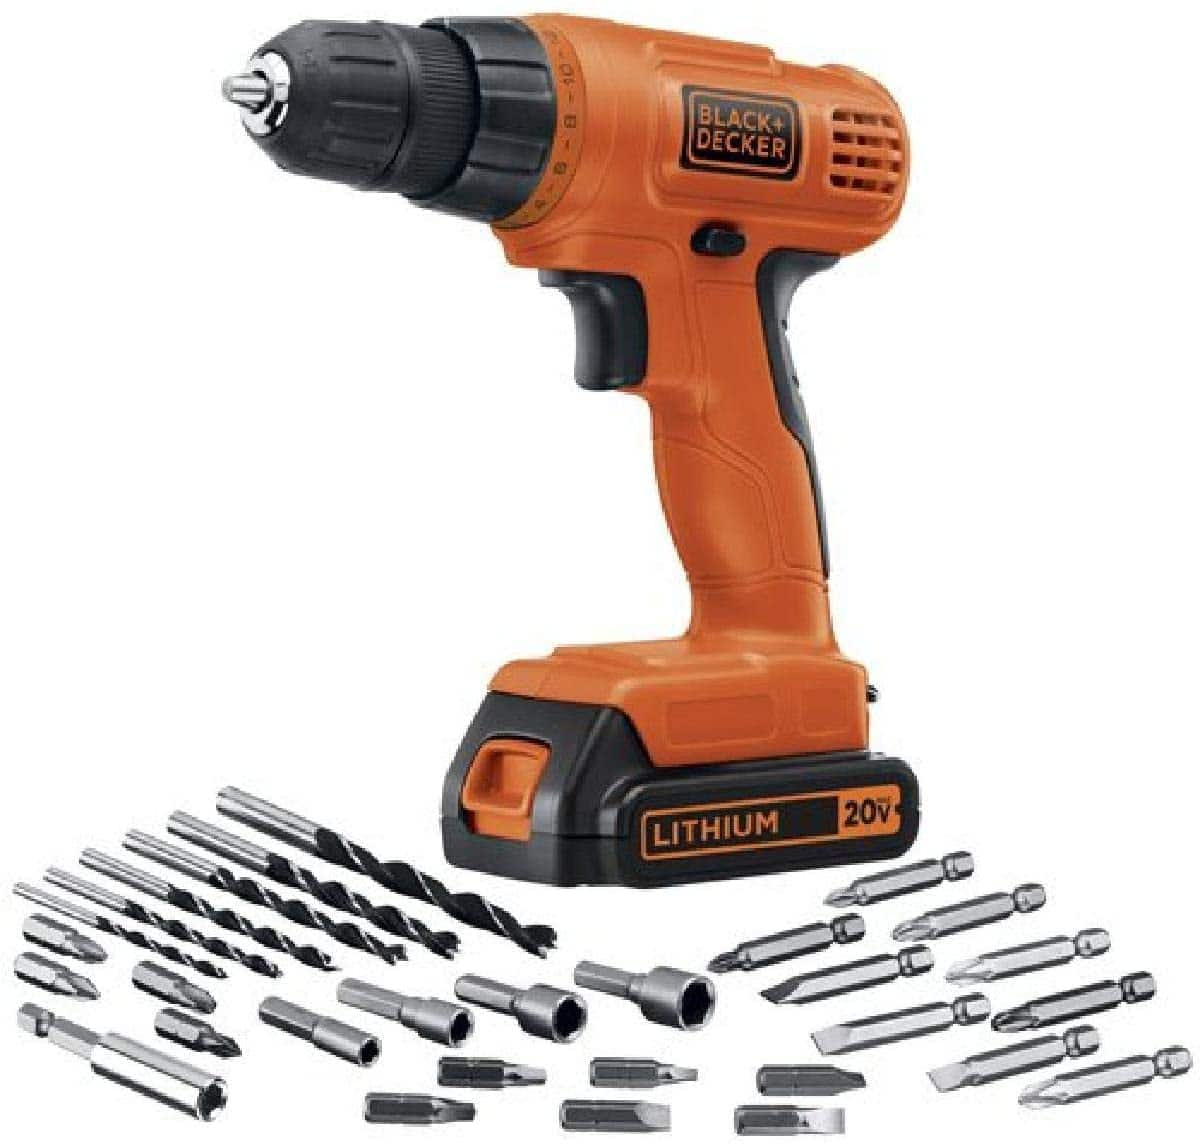 Deal of the day for Prime Members: BLACK+DECKER 20V Max Cordless Drill / Driver with 30-Piece Accessories (LD120VA) - $39.00